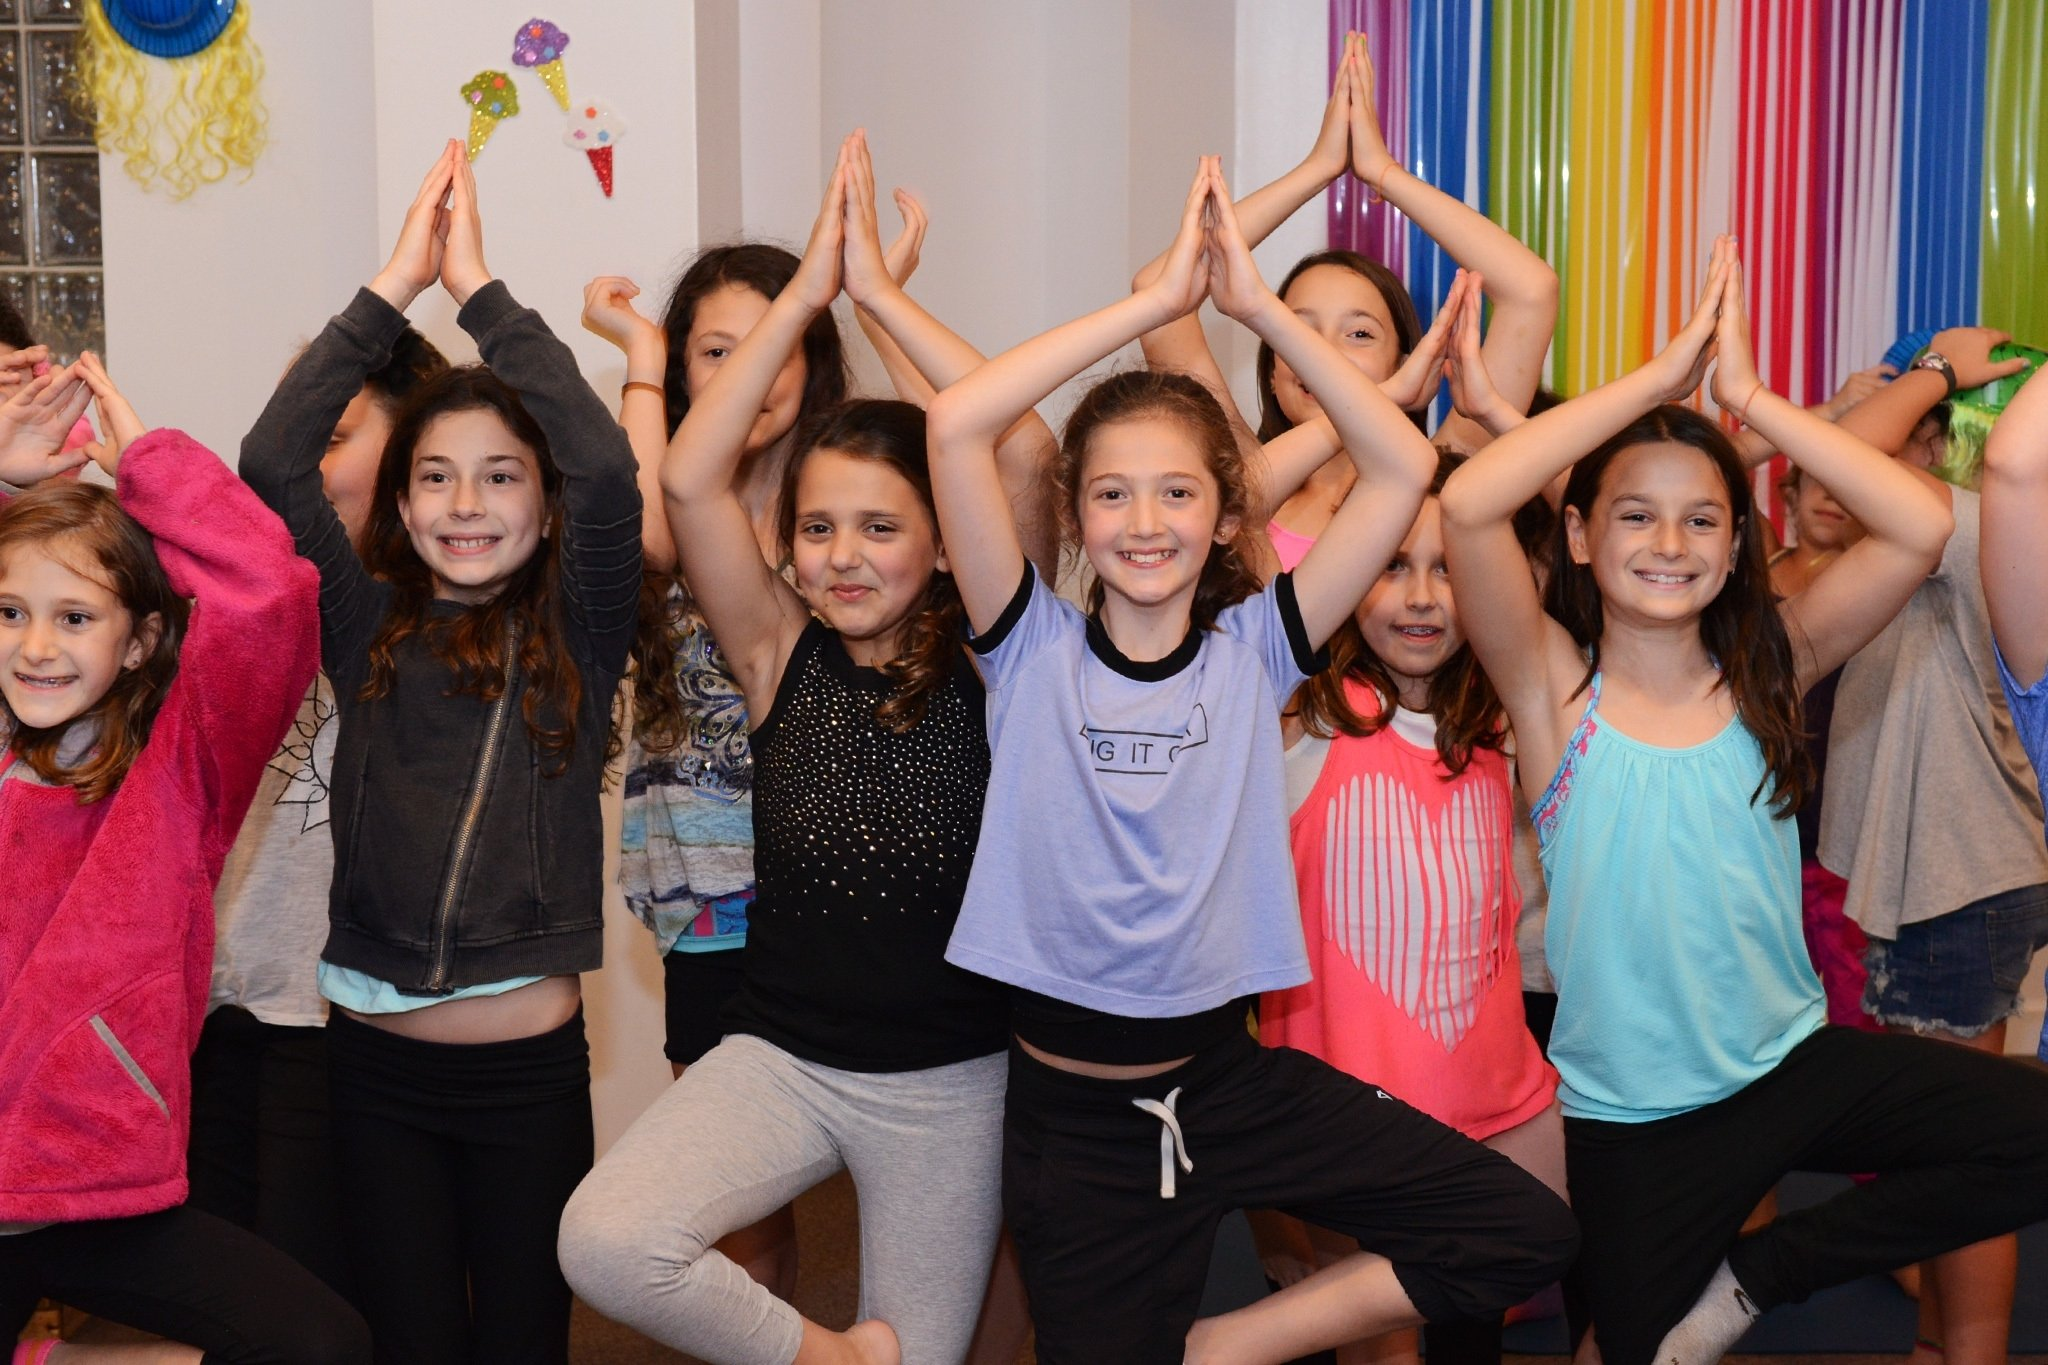 10 Famous Fun Birthday Party Ideas For 12 Year Olds best birthday party ideas in chicago for kids 2 2020